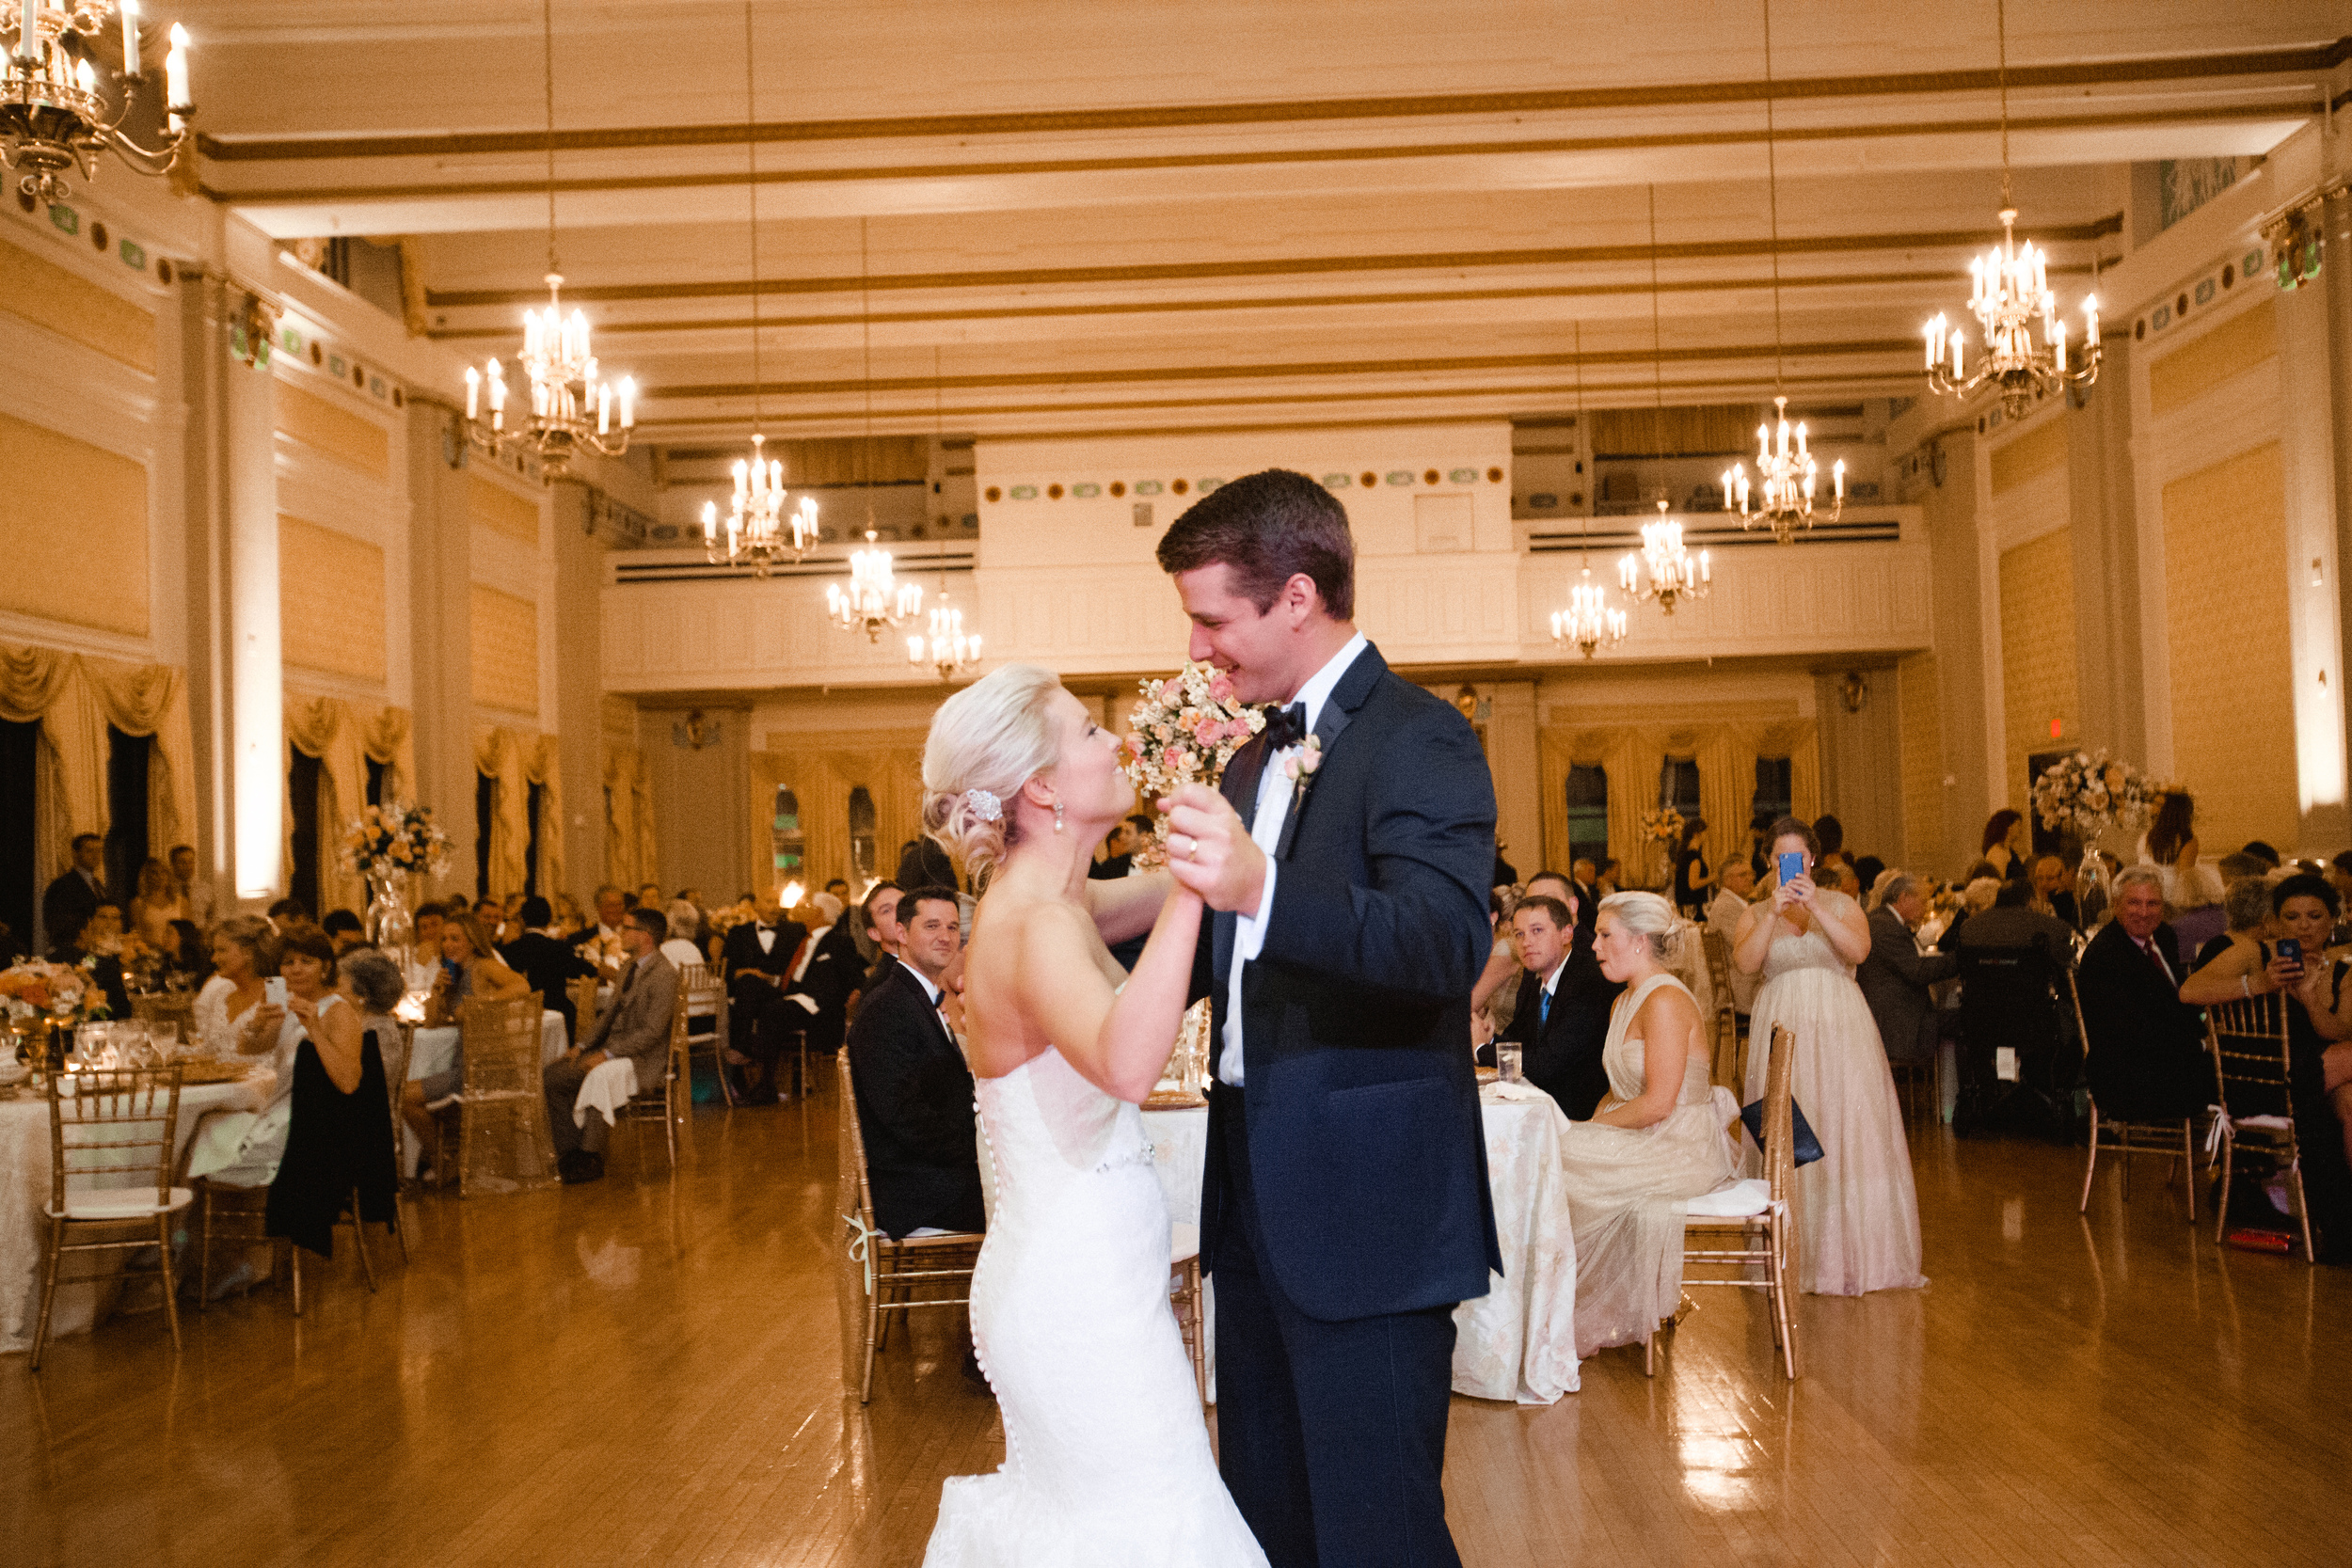 ChelseaMike_Wedding_AmyCampbellPhotography_0778.jpg